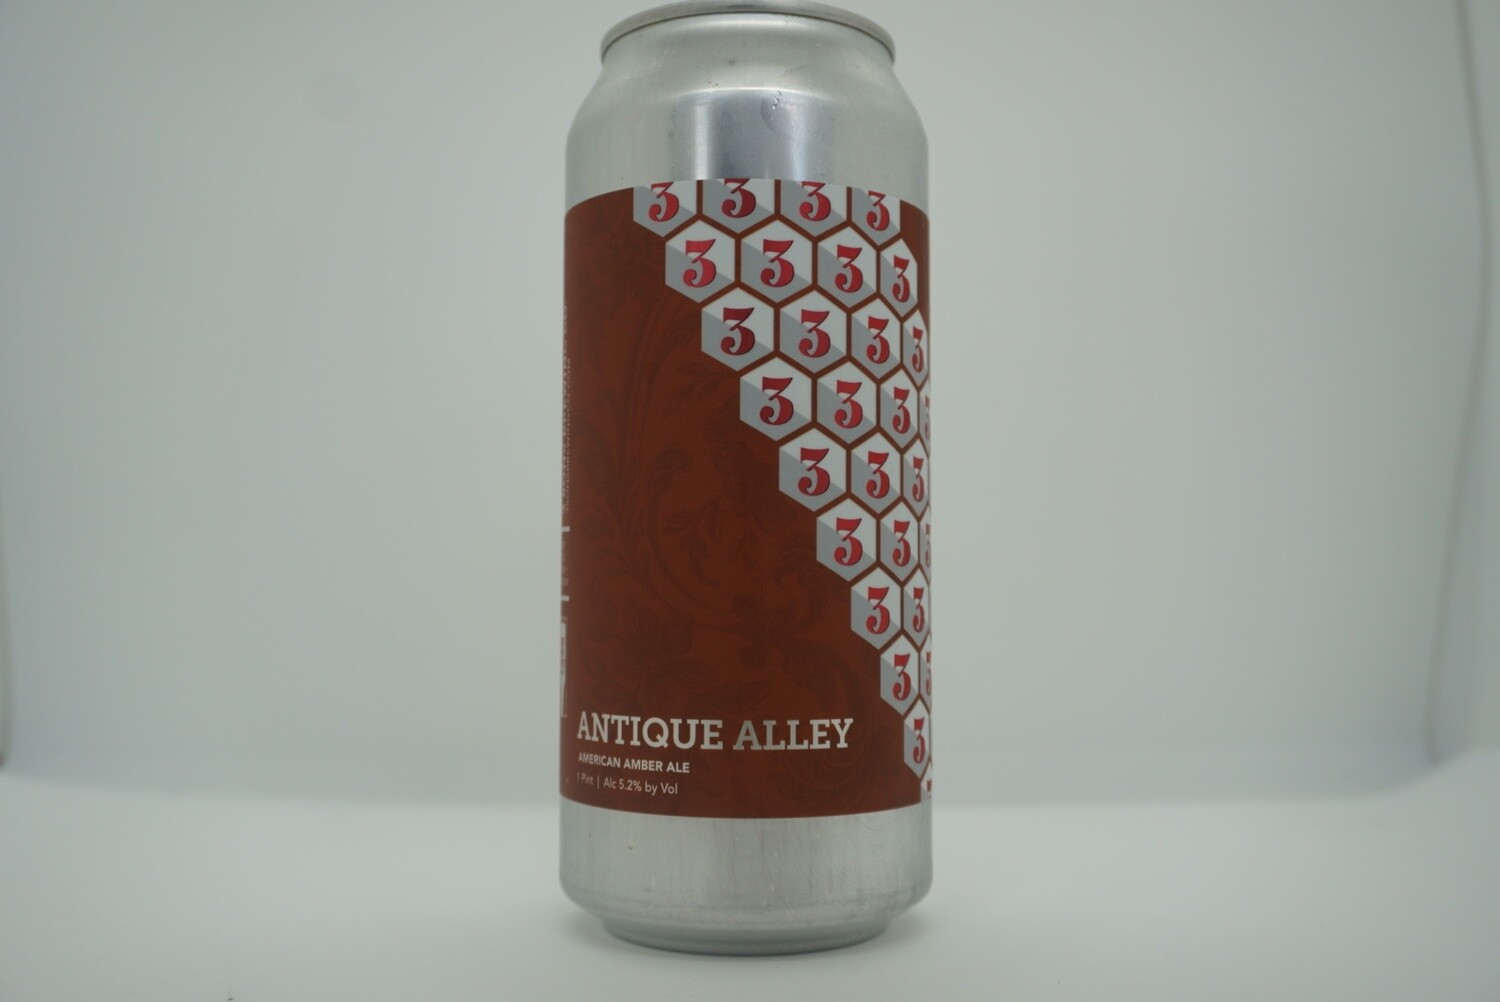 3 Sons - Antique Alley - Amber - 5.4% ABV - 16oz Can